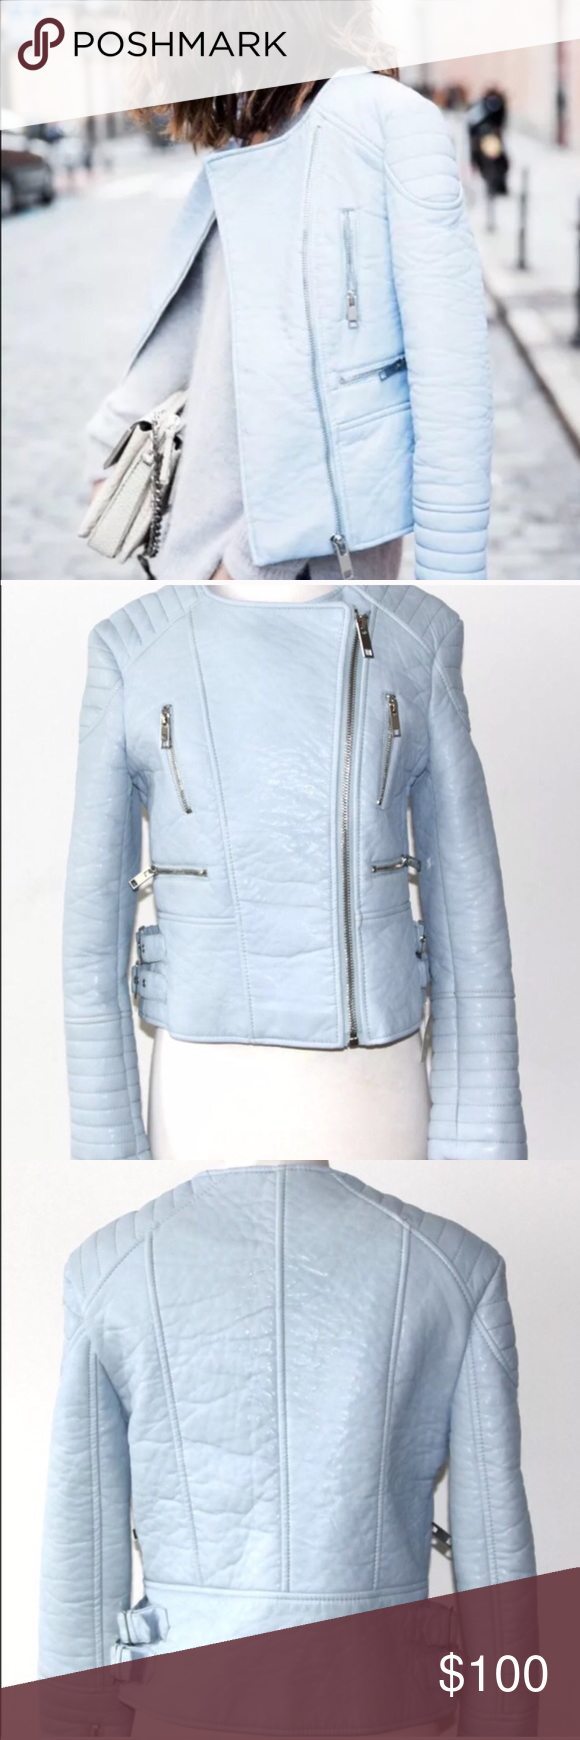 Zara baby blue faux leather motorcycle jacket Size small. Worn once. Excellent condition. Zara Jackets & Coats